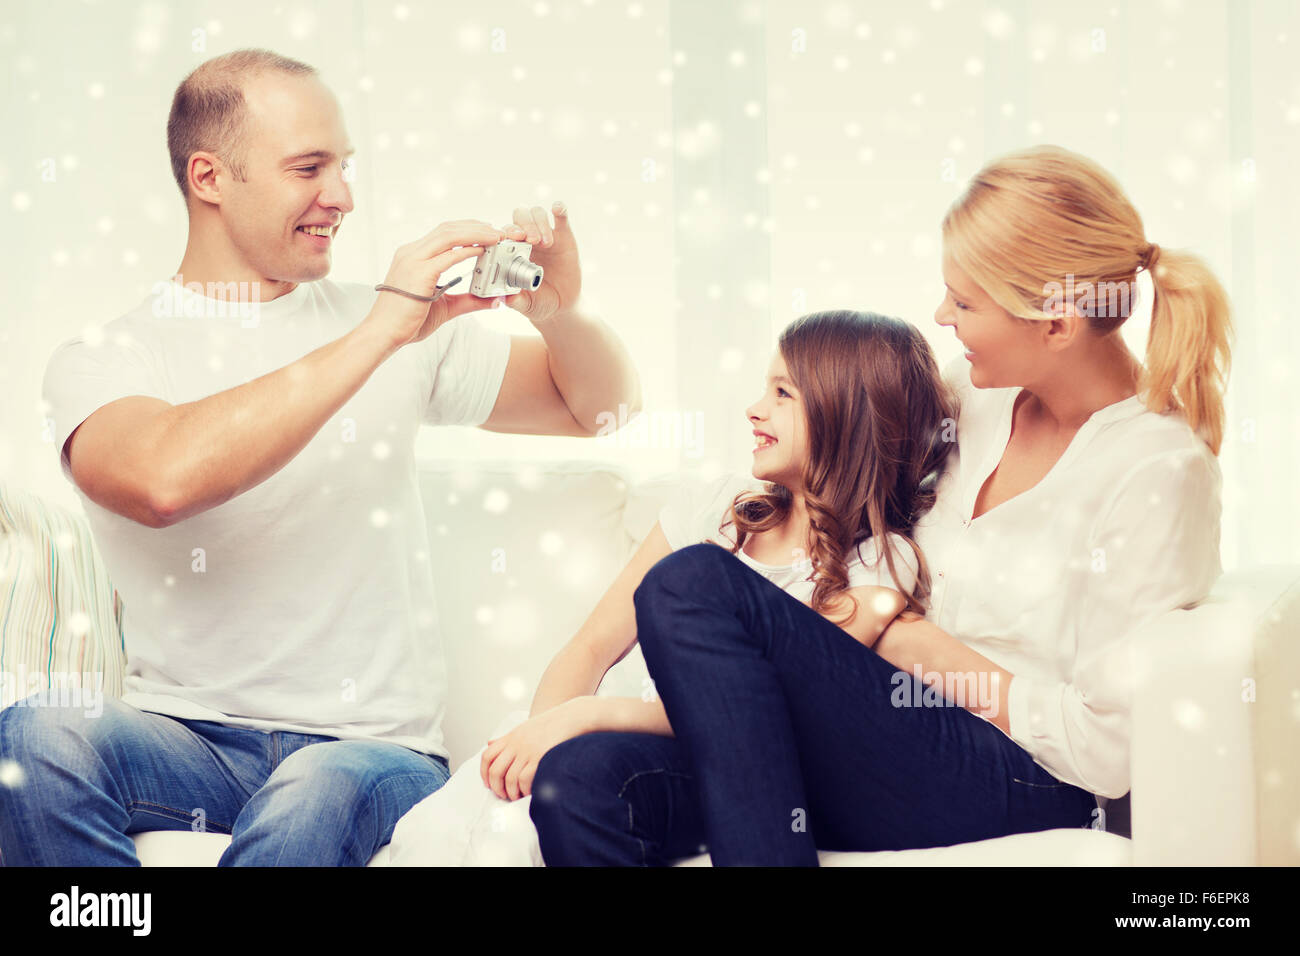 happy family with camera taking picture at home - Stock Image